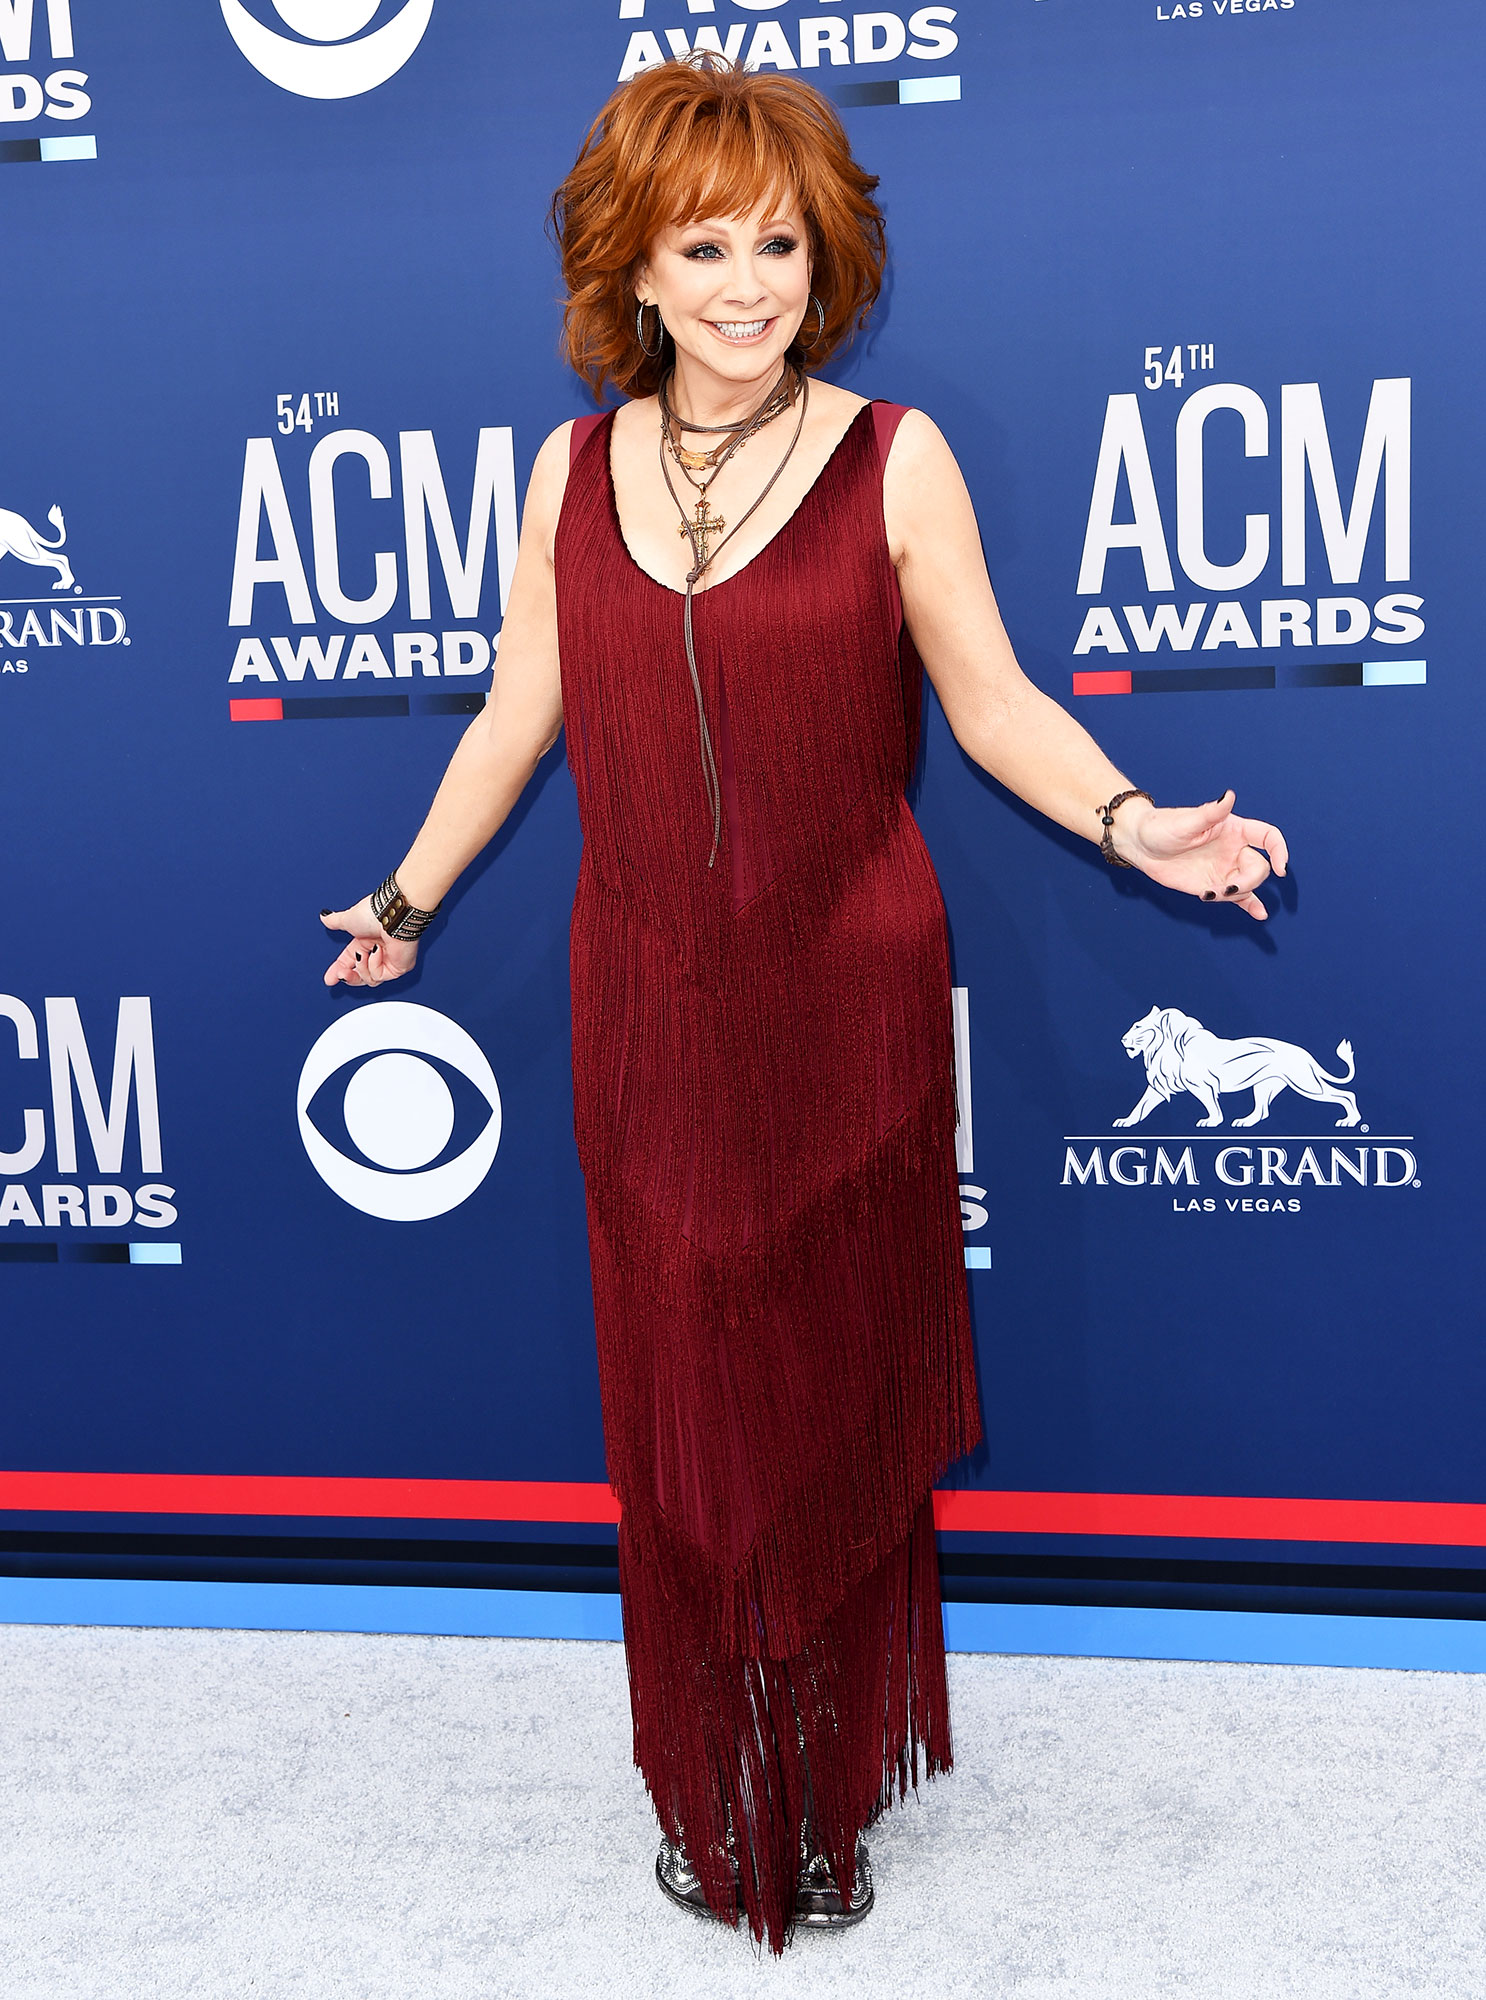 Reba McEntire The Best Looks From the Country Music Awards Red Carpet - The country music legend awed in a red fringe dress that was full of movement.